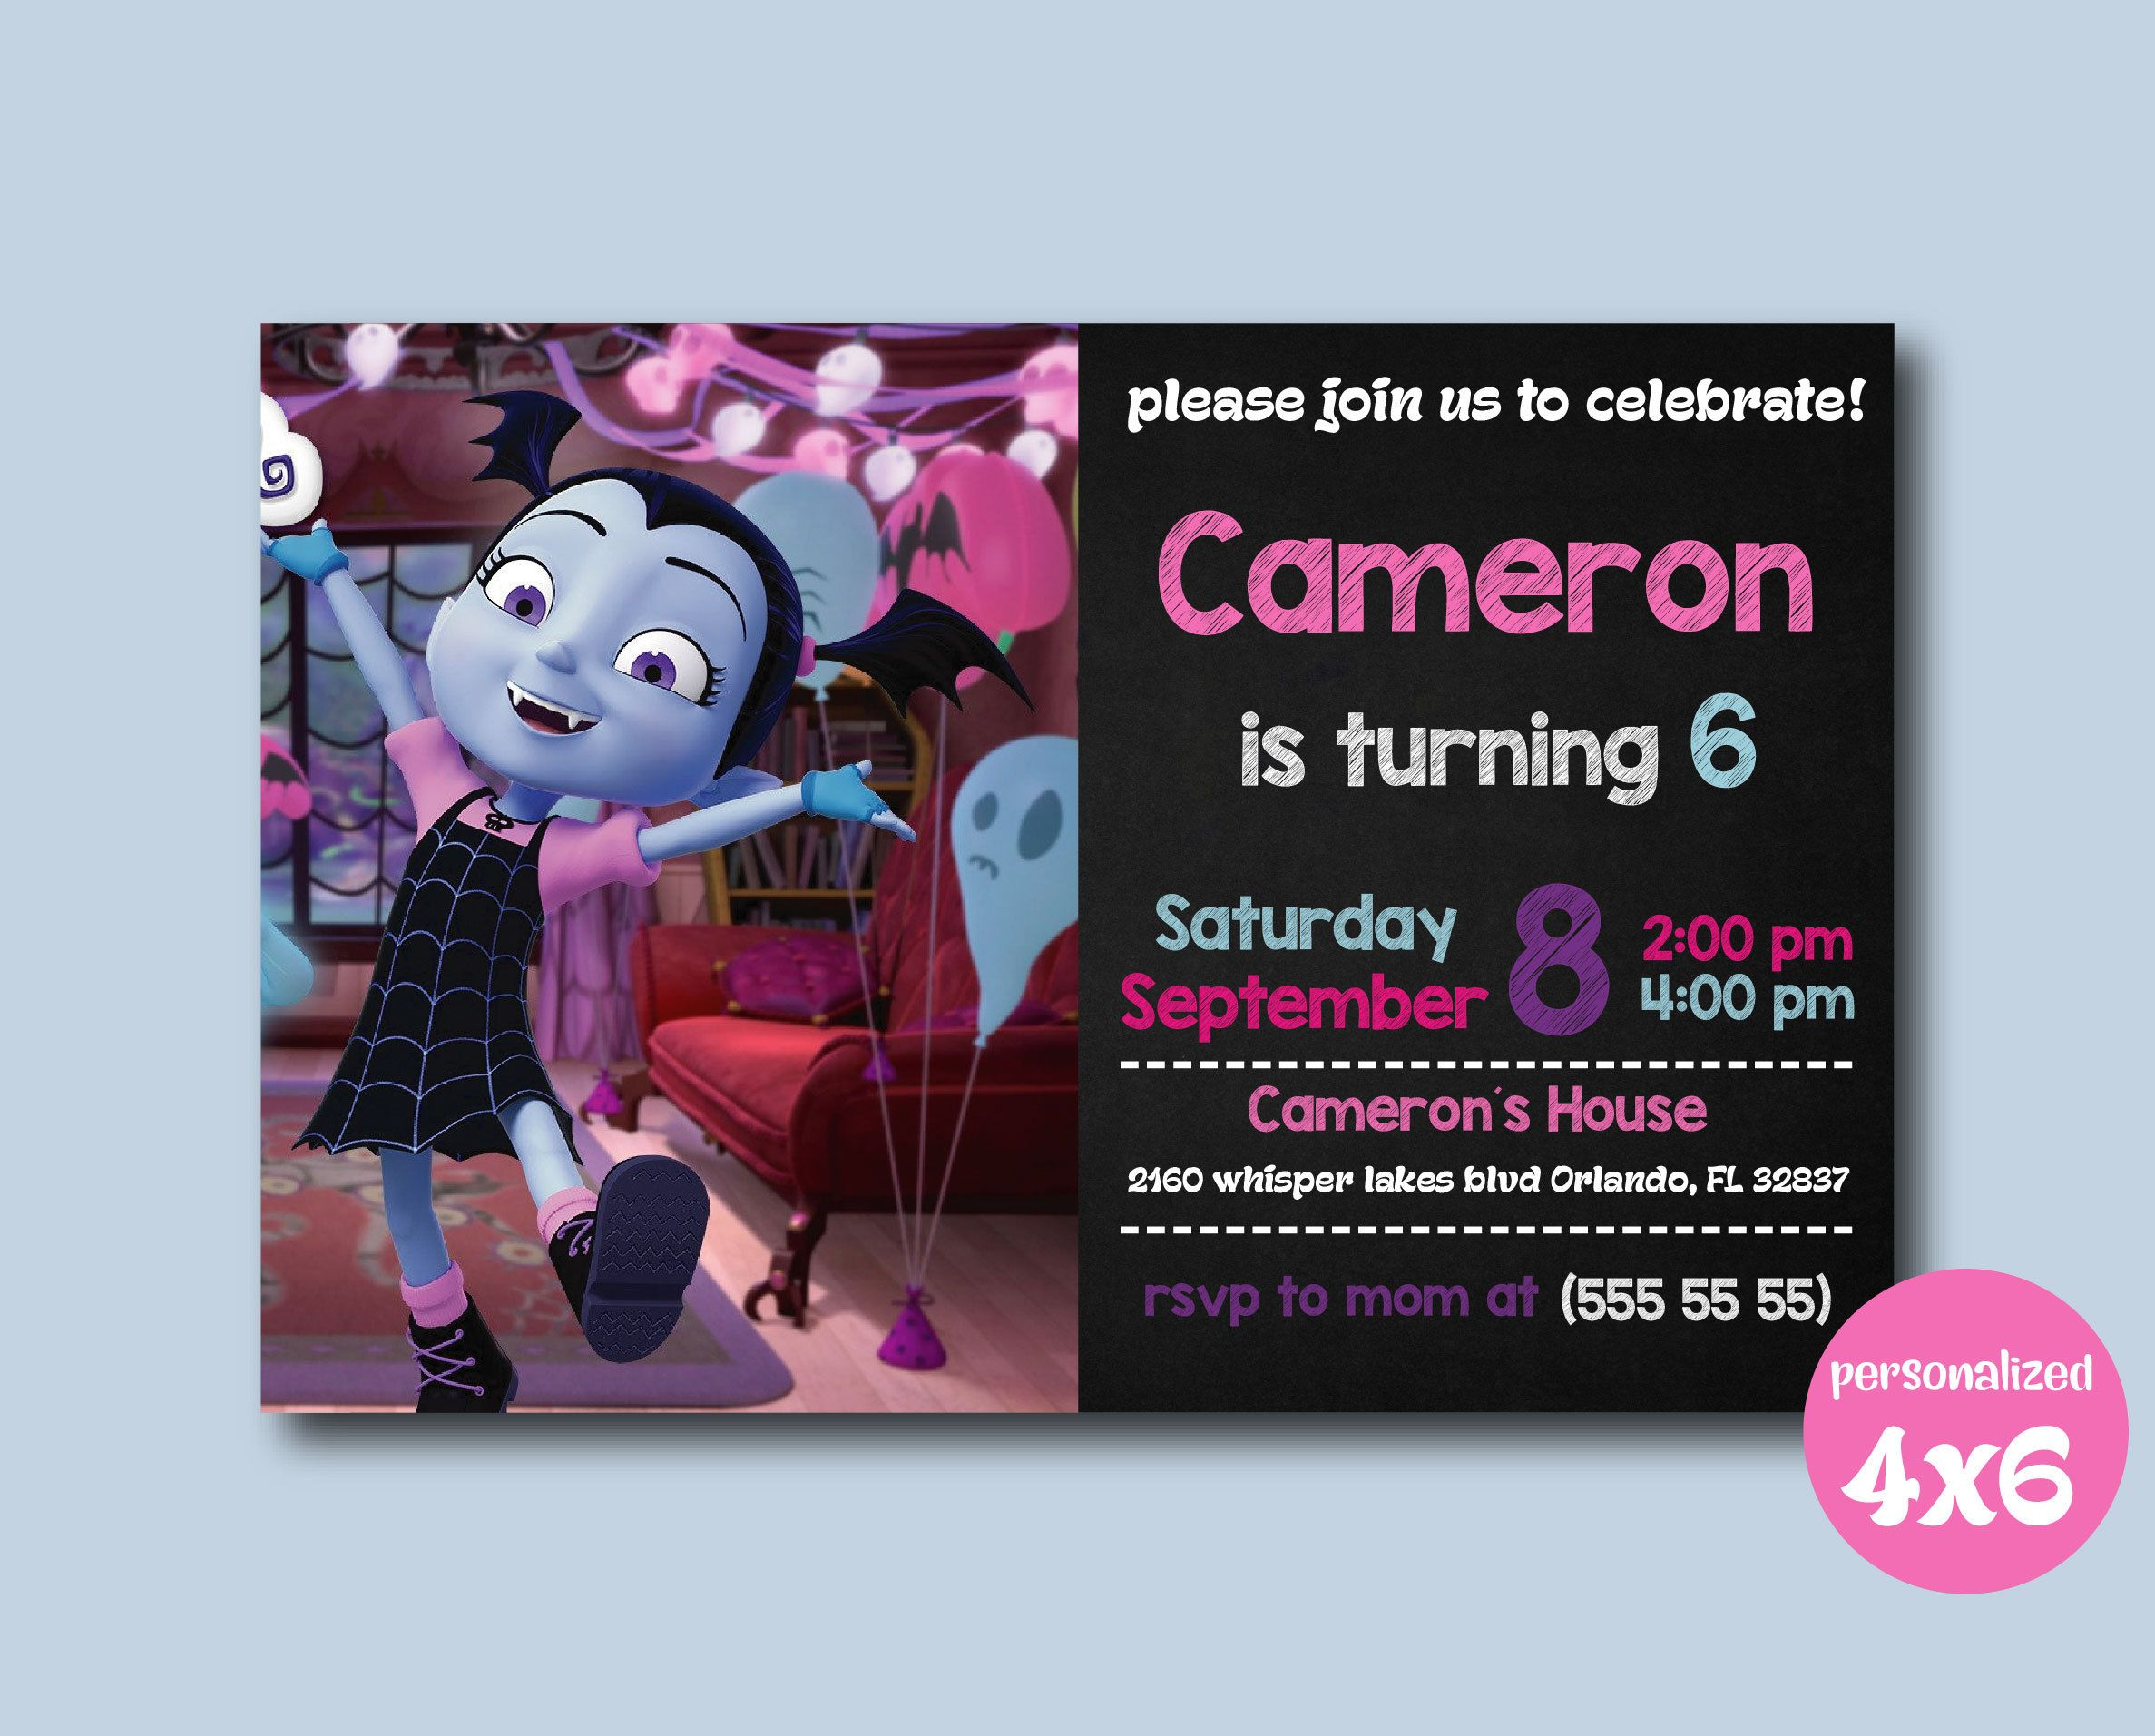 Vampirina Invitation, Vampirina Birthday Party, Vampirina Birthday  Invitation, Vampirina, Vampirina Cards,